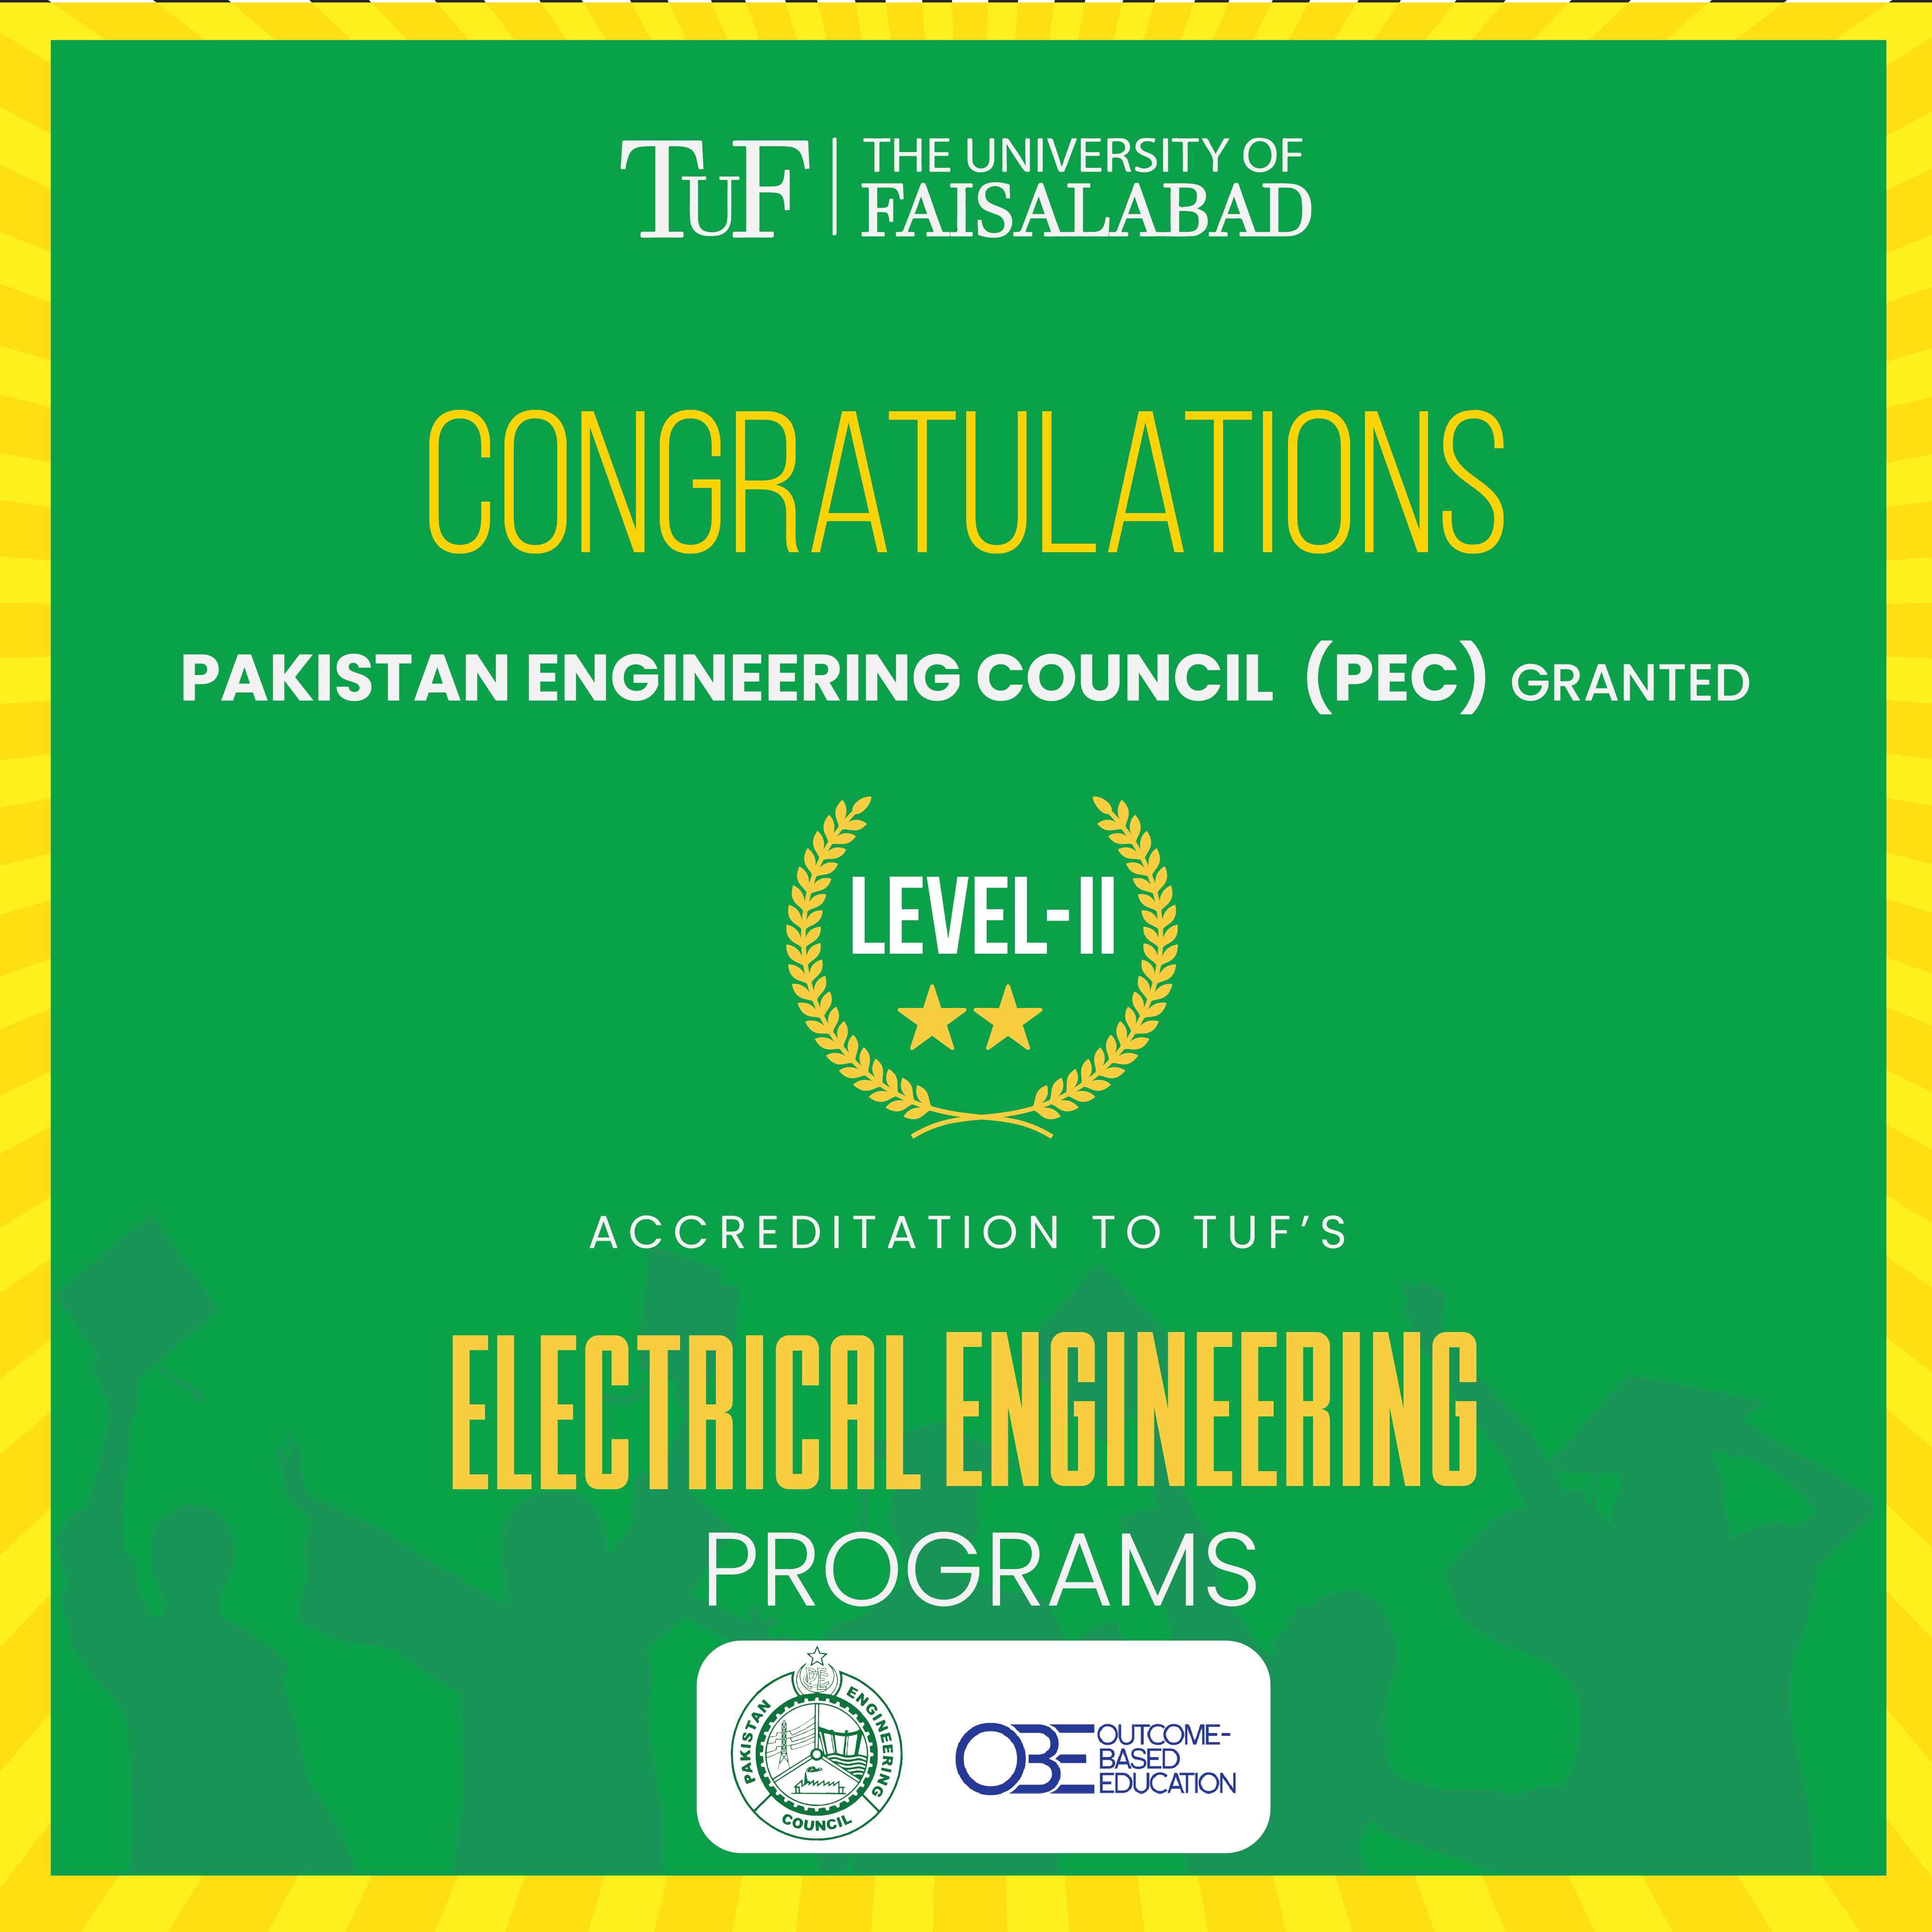 Accreditation of TUF's Electrical Engineering